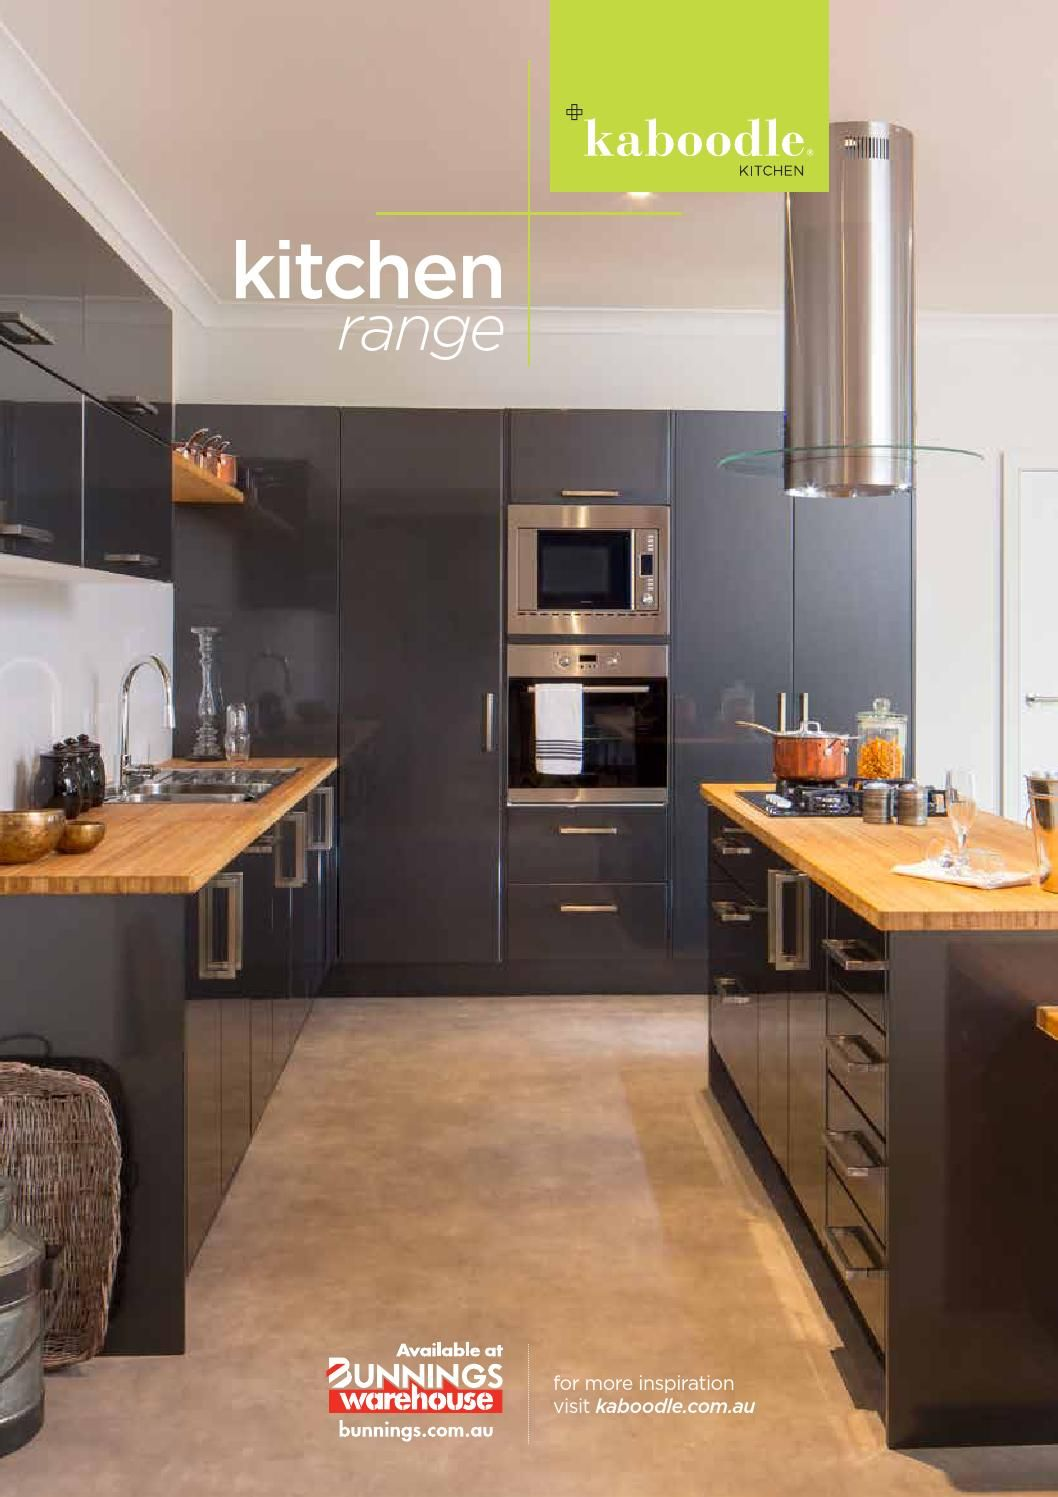 kaboodle kitchen australian catalogue in 2019 my collection kitchen kitchen storage on kaboodle kitchen microwave id=86572